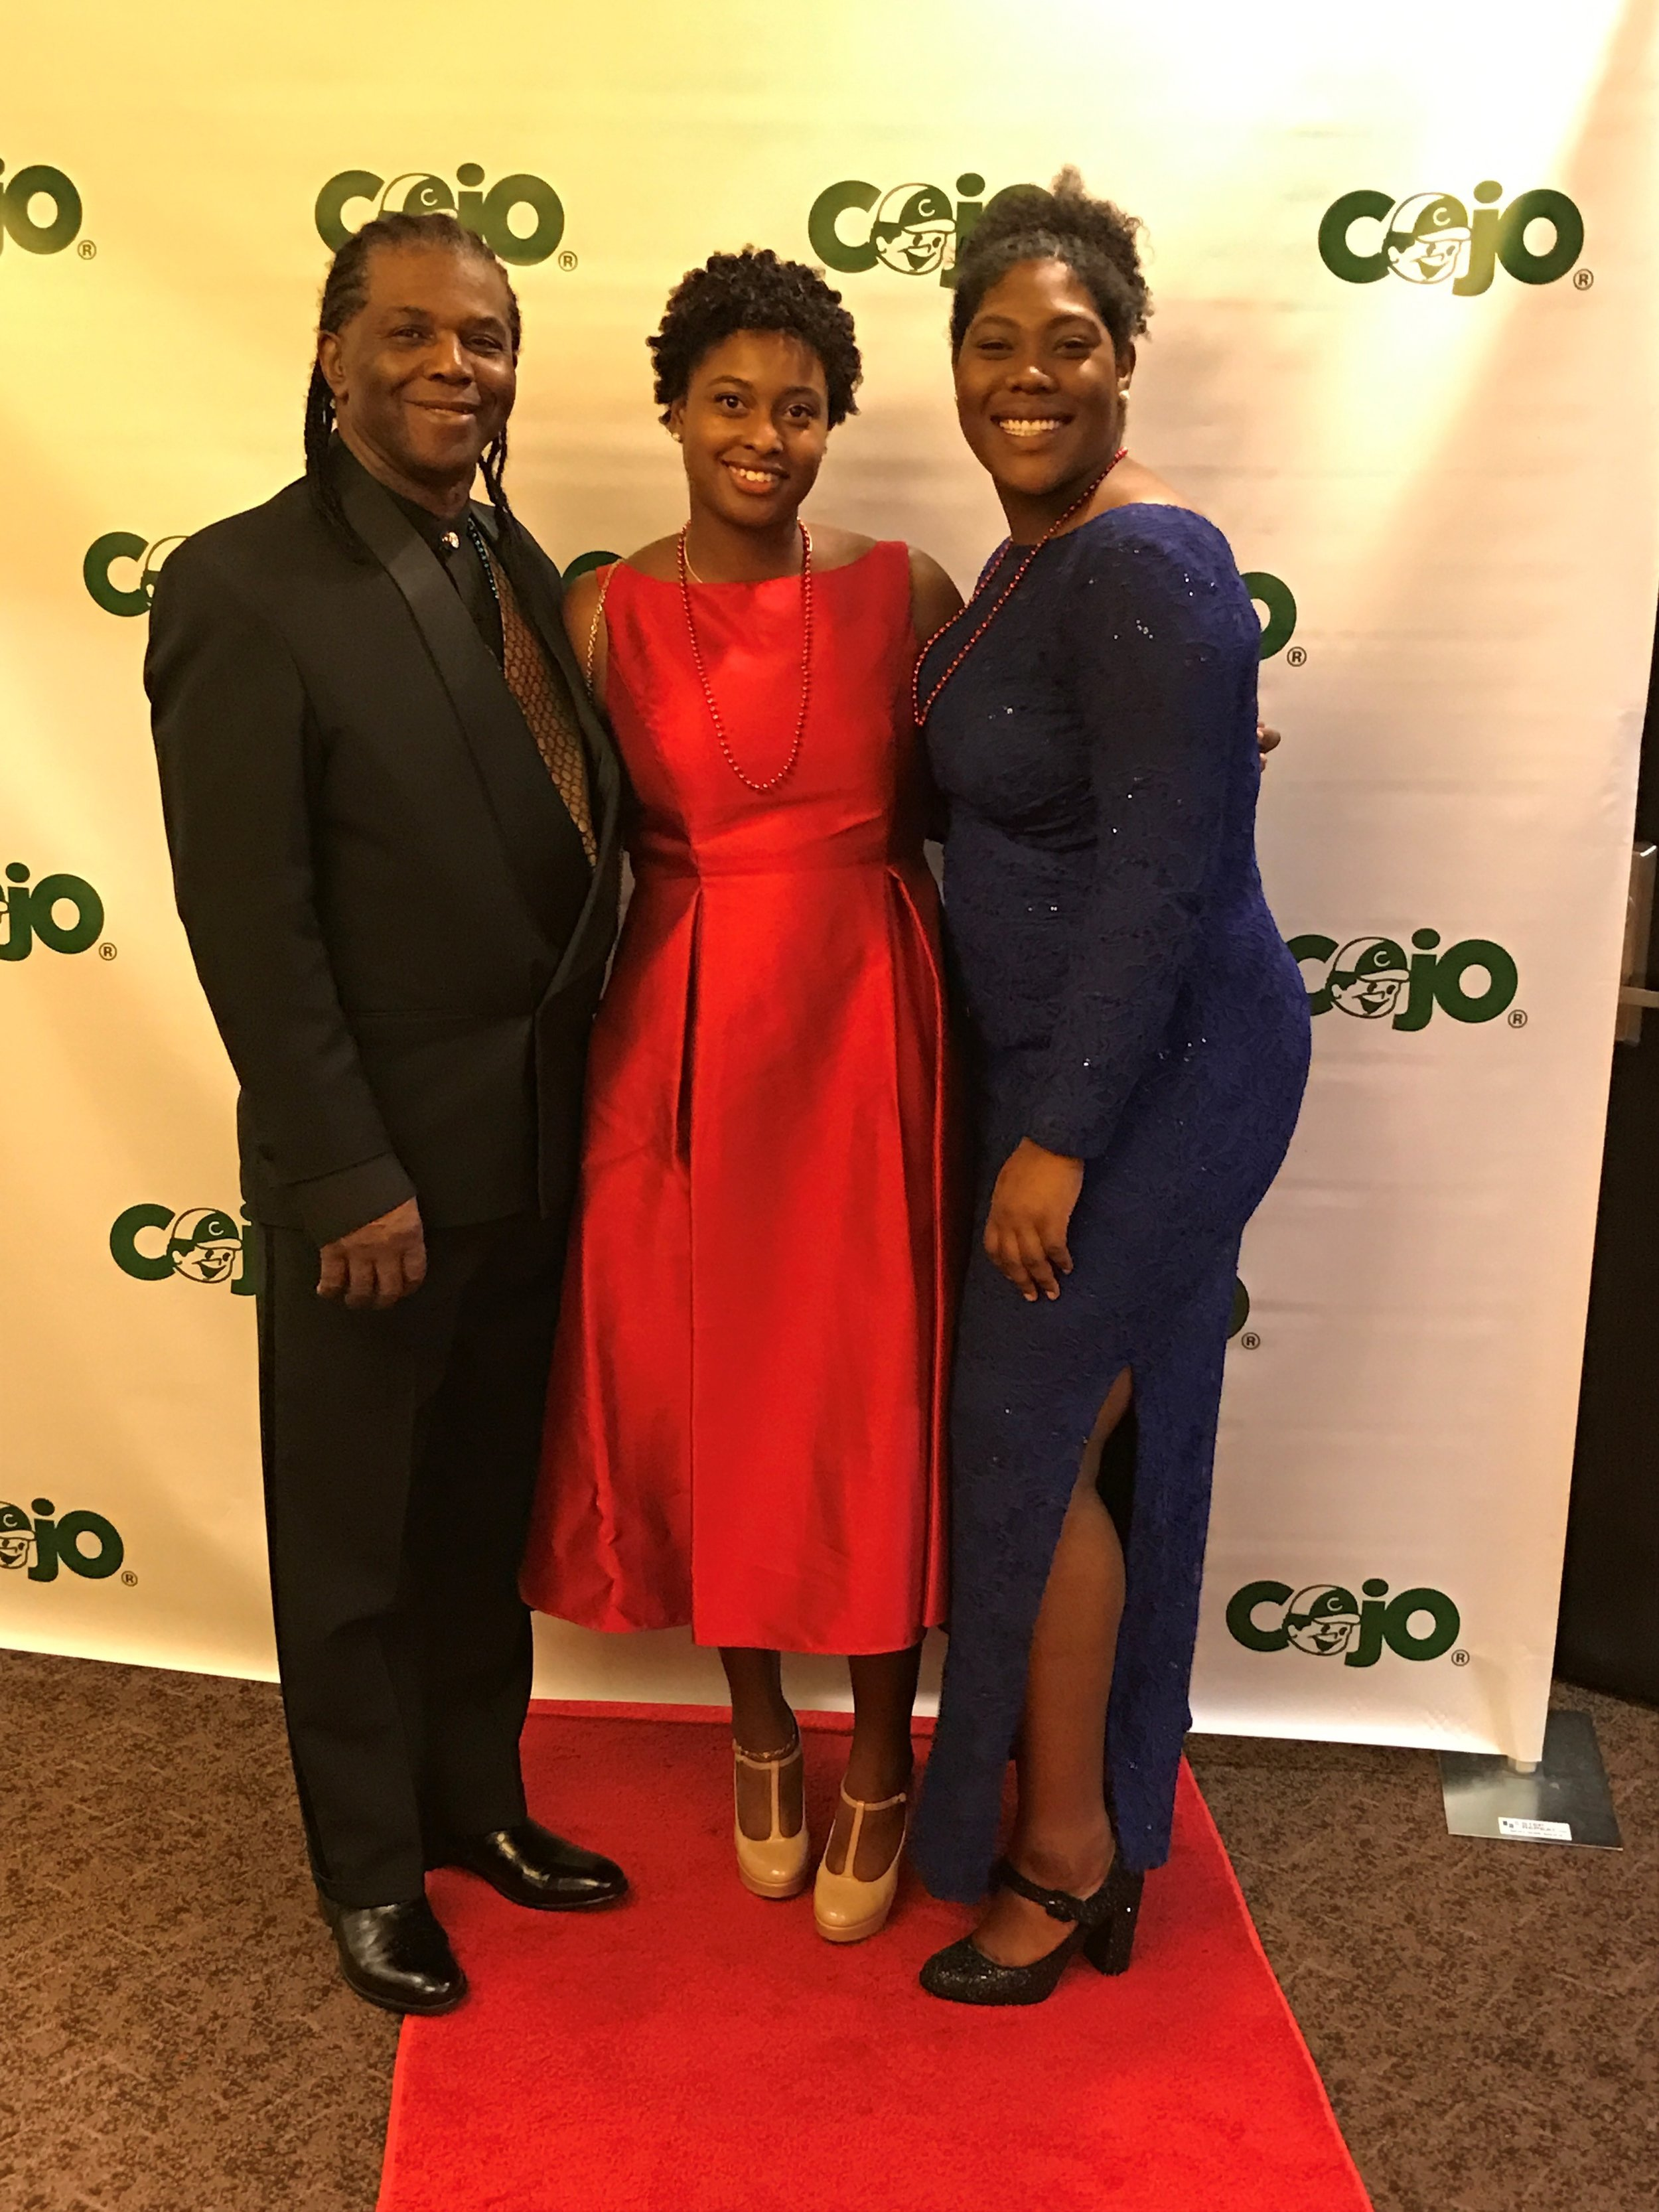 Trevor Smith (Tower Isles' CFO), Kyla Bynum (Tower Isles' Marketing Manager), and fellow COJO supporter..